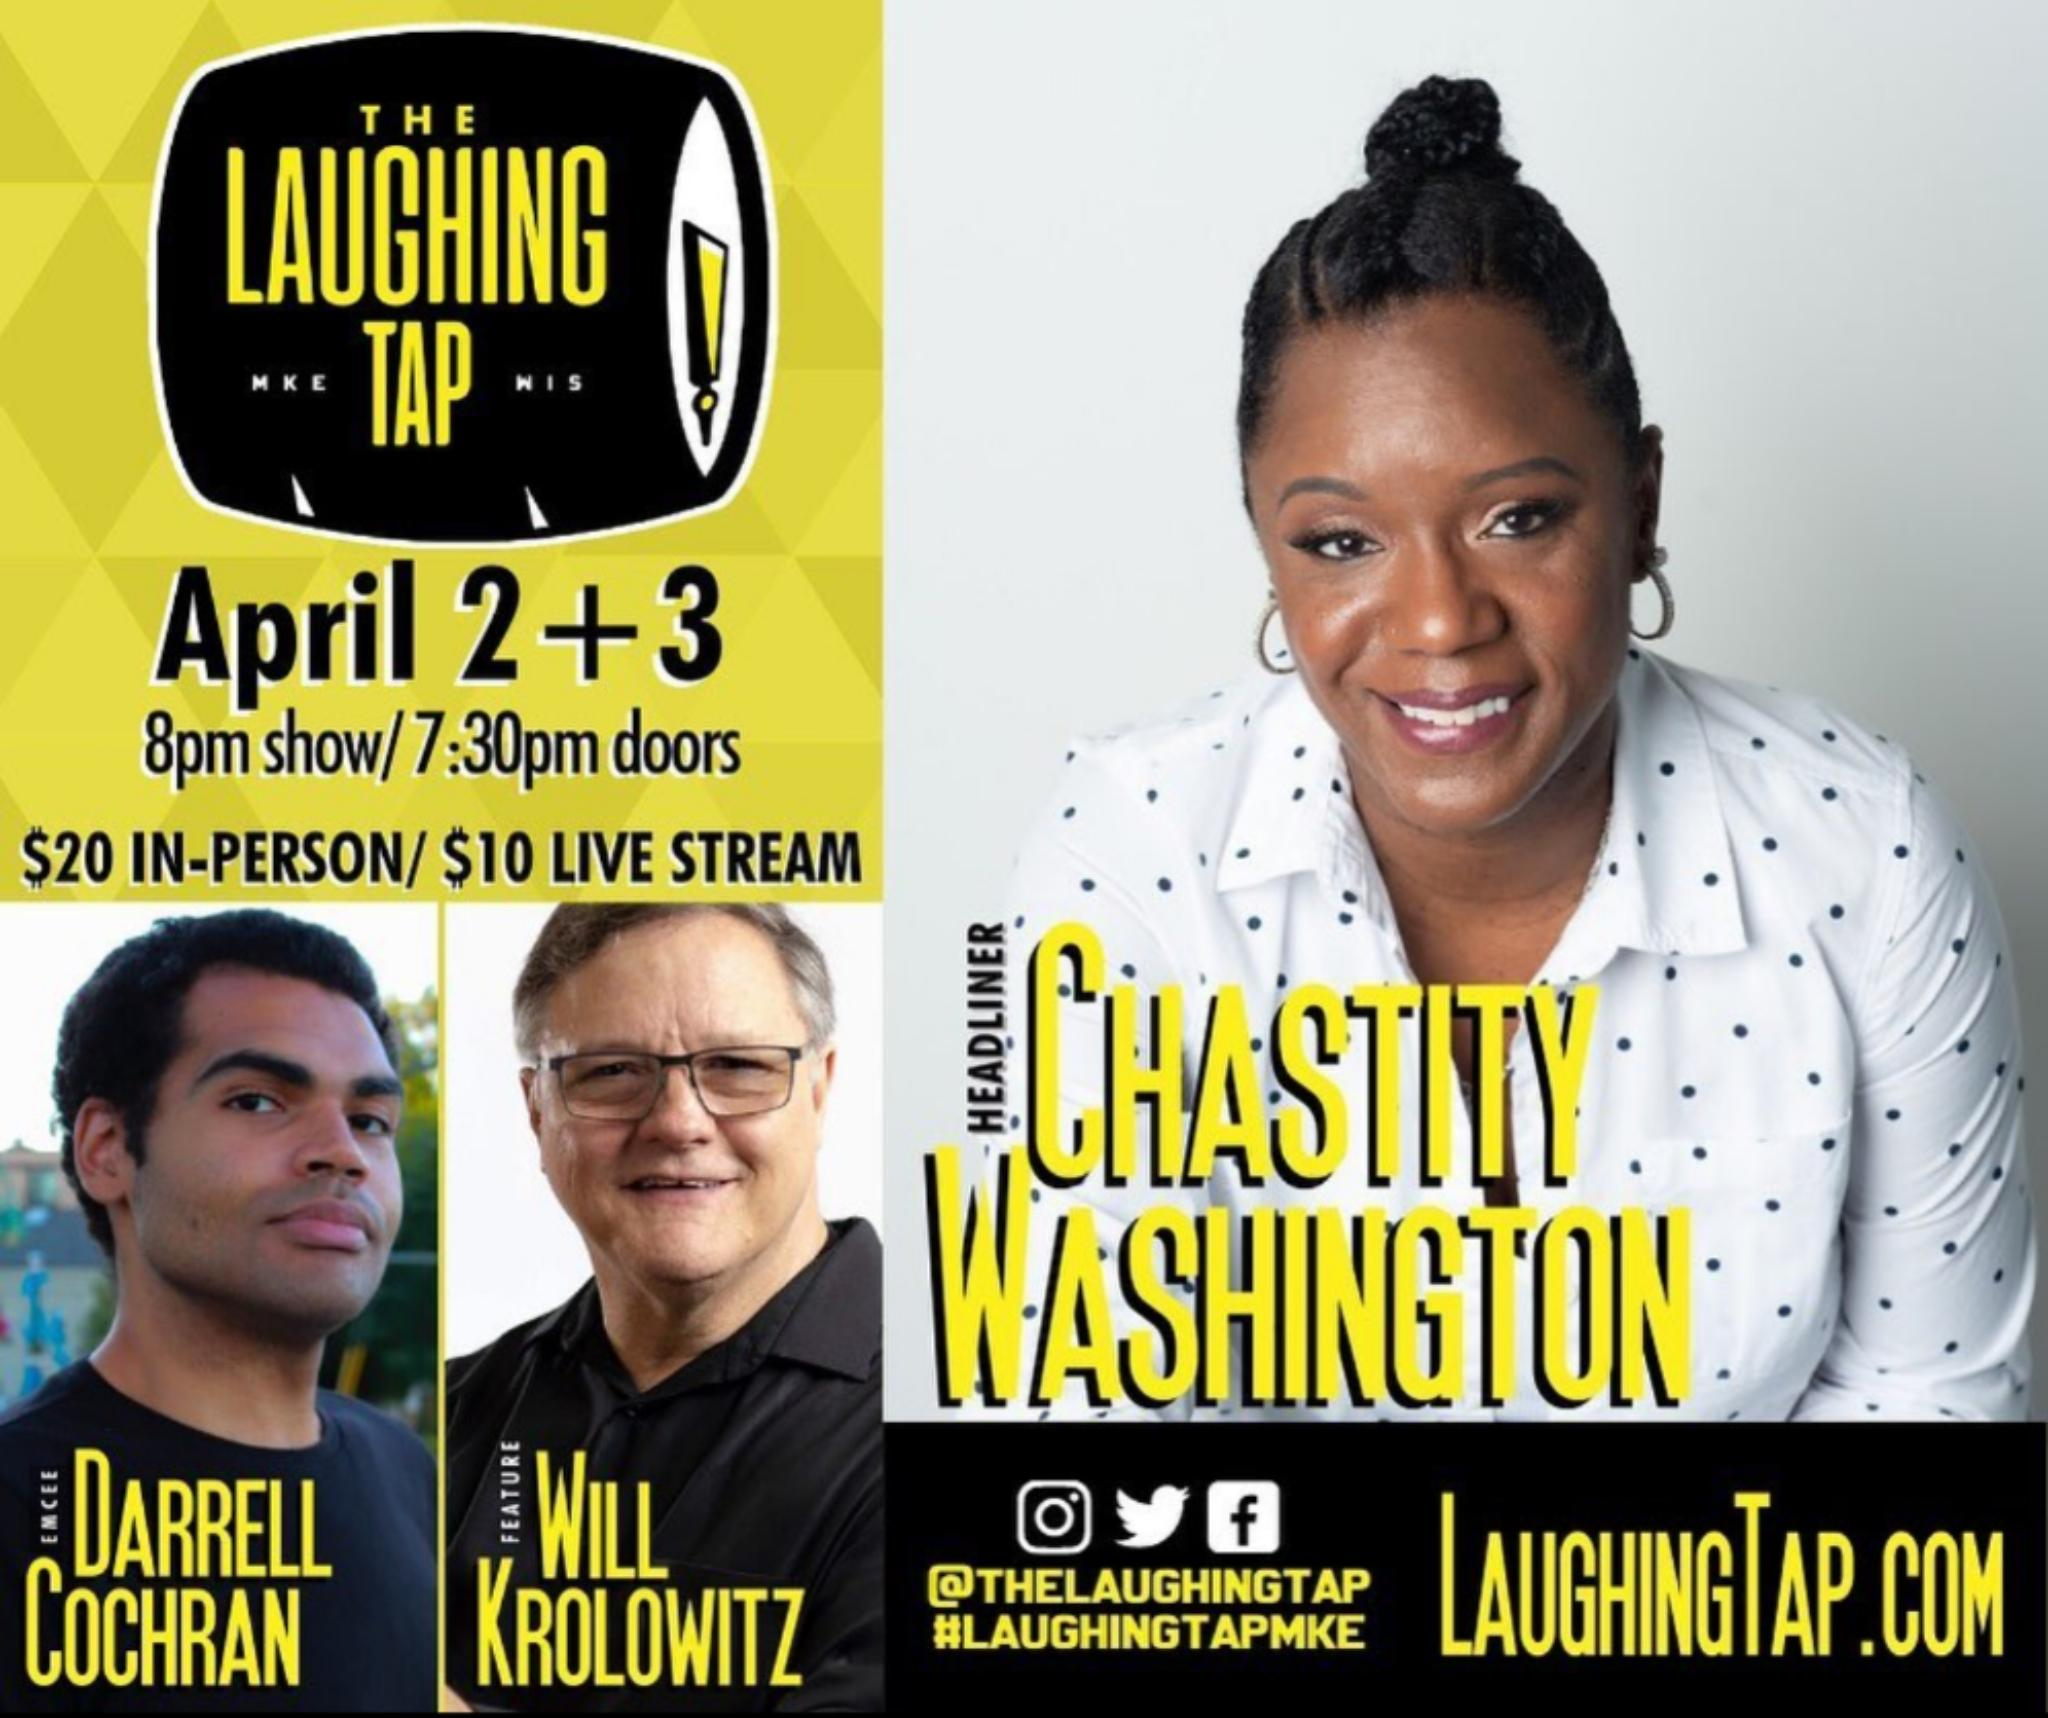 The Laughing Tap<br>706 S 5th St, Milwaukee, WI<br>Or from the comfort of your own couch!